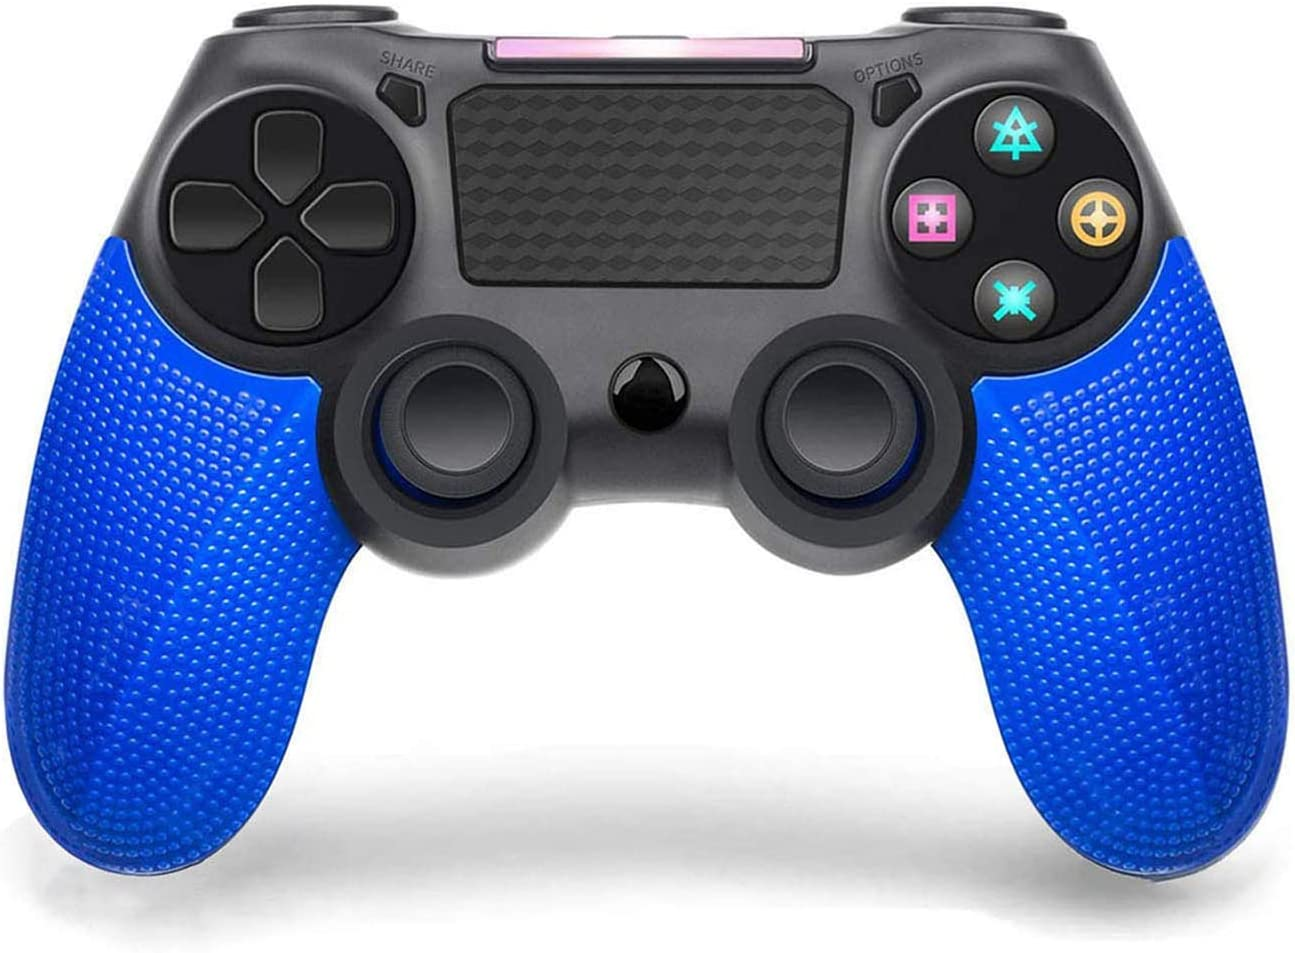 PS4 Controller,Wireless Controller for Playstation 4,for Playstation 4/Pro/Slim/PC and Laptop with Motion Motors and Audio Function,Mini LED Indicator, USB Cable and Anti-Slip (Blue)